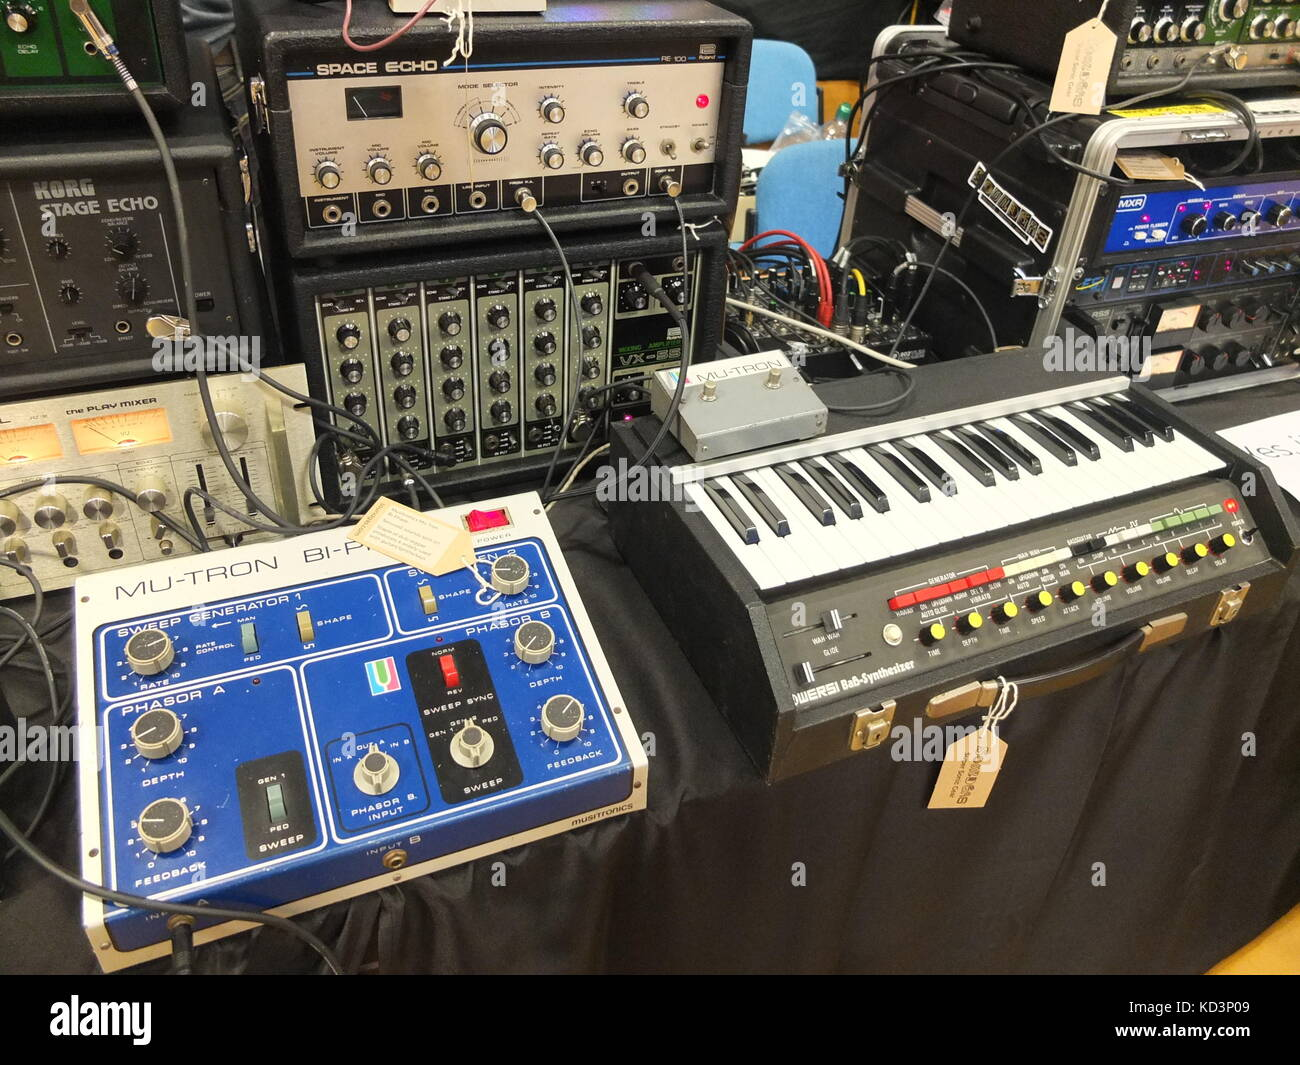 Analogue gear including a Mu-tron Bi-Phase, Wersi bass synth and echo units on display at Synthfest UK, Octagon - Stock Image